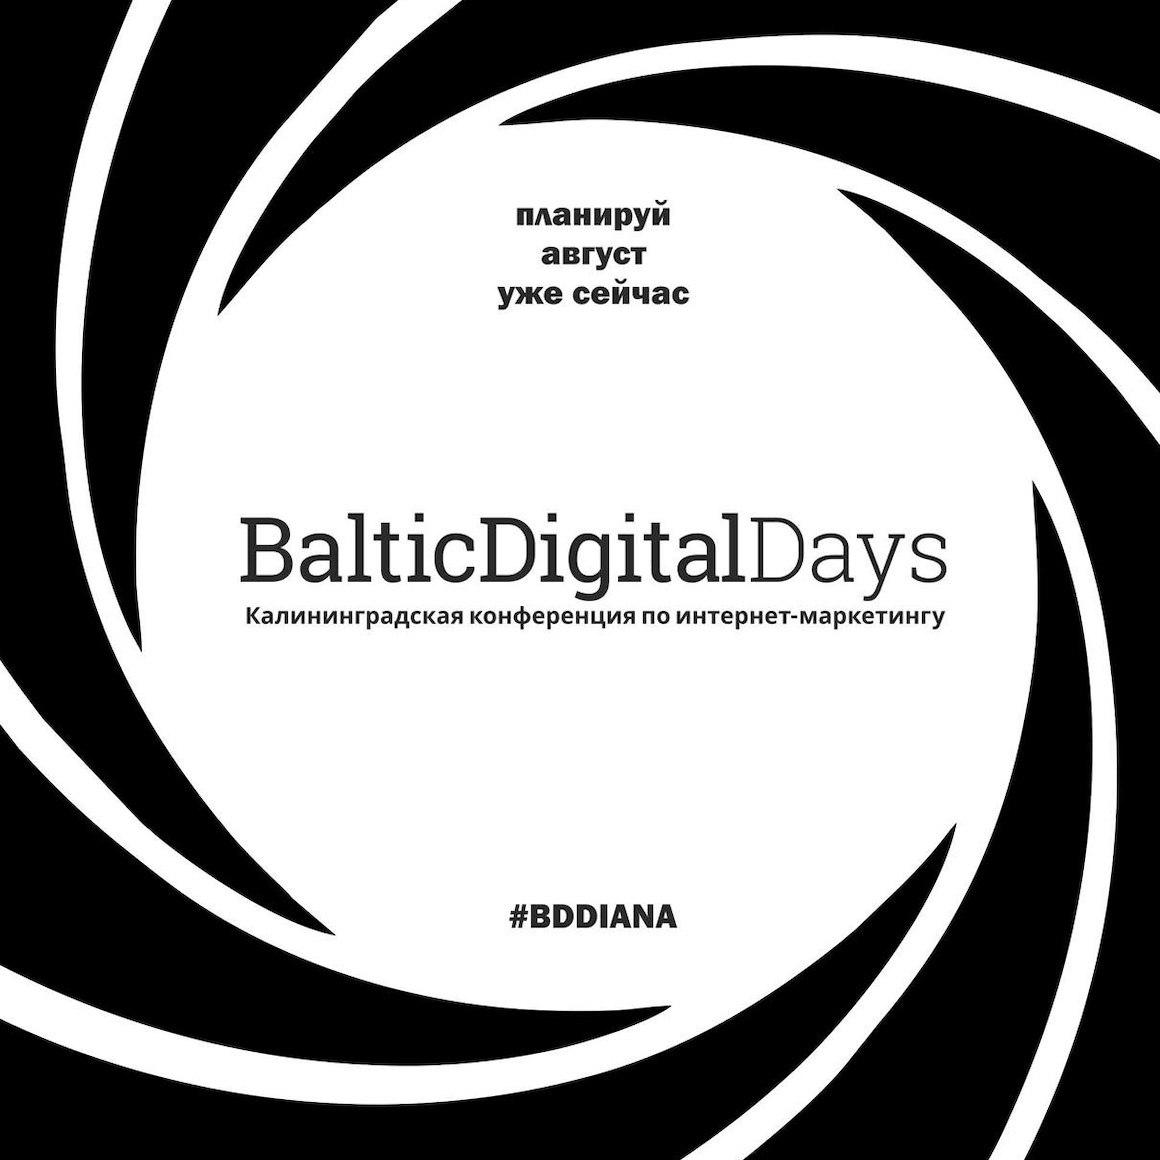 Baltic Digital Days